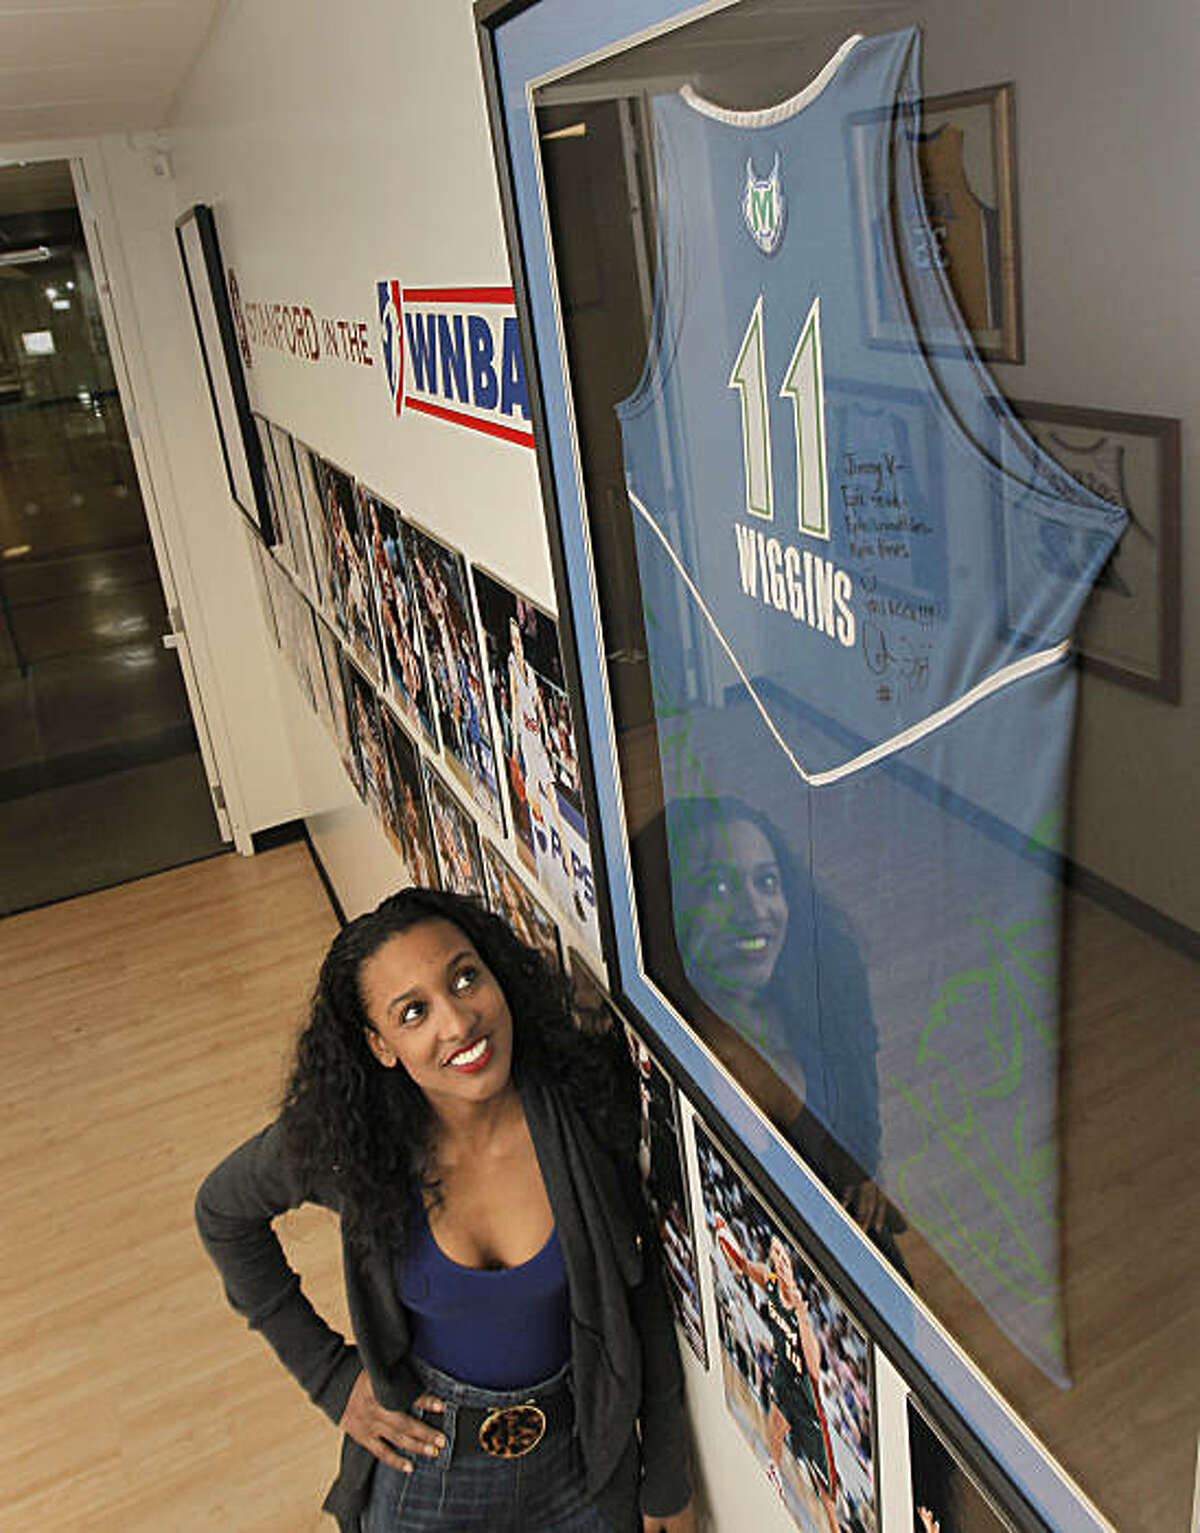 Former Stanford University basketball player, Candice Wiggins, on Wednesday Dec. 8, 2010, in Palo Alto, Calif., has her WNBA jersey hanging on the walls of the family sports center on campus. Wiggins is back at school taking undergraduate studies outside of her professional basketball career with the Minnesota Lynx.